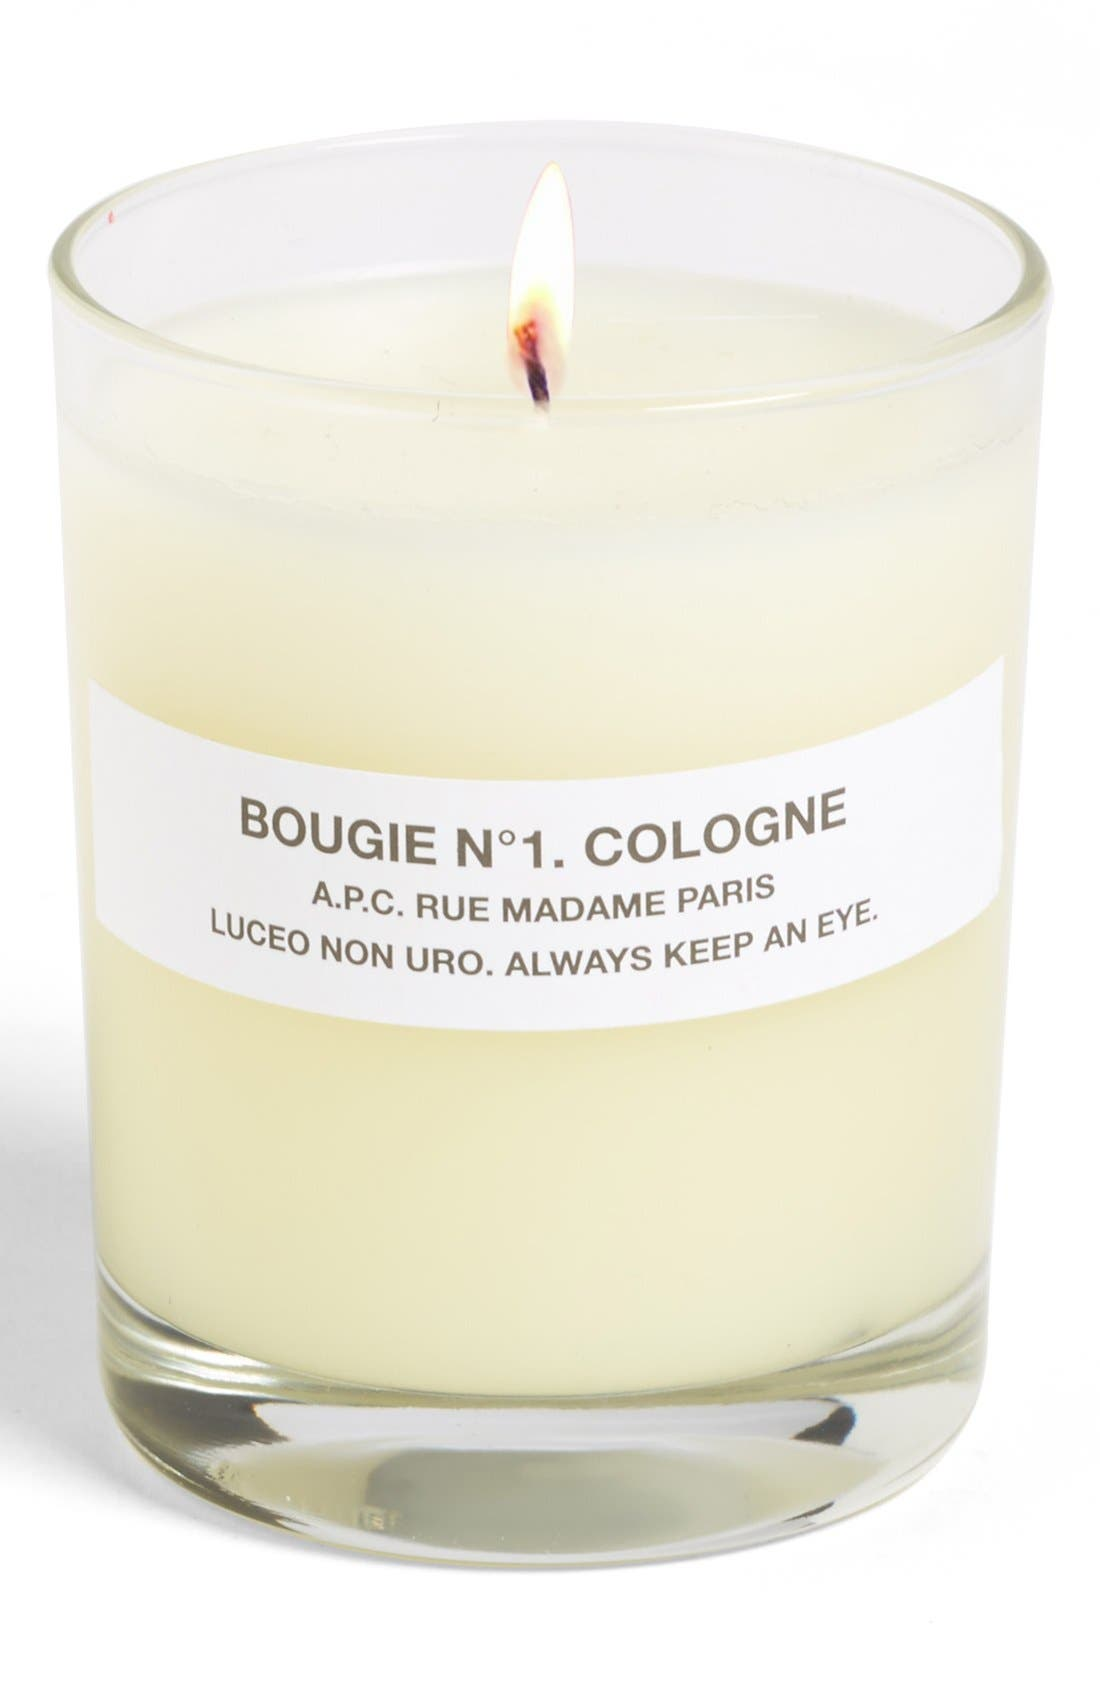 'Bougie Cologne' Scented Candle,                             Main thumbnail 1, color,                             800